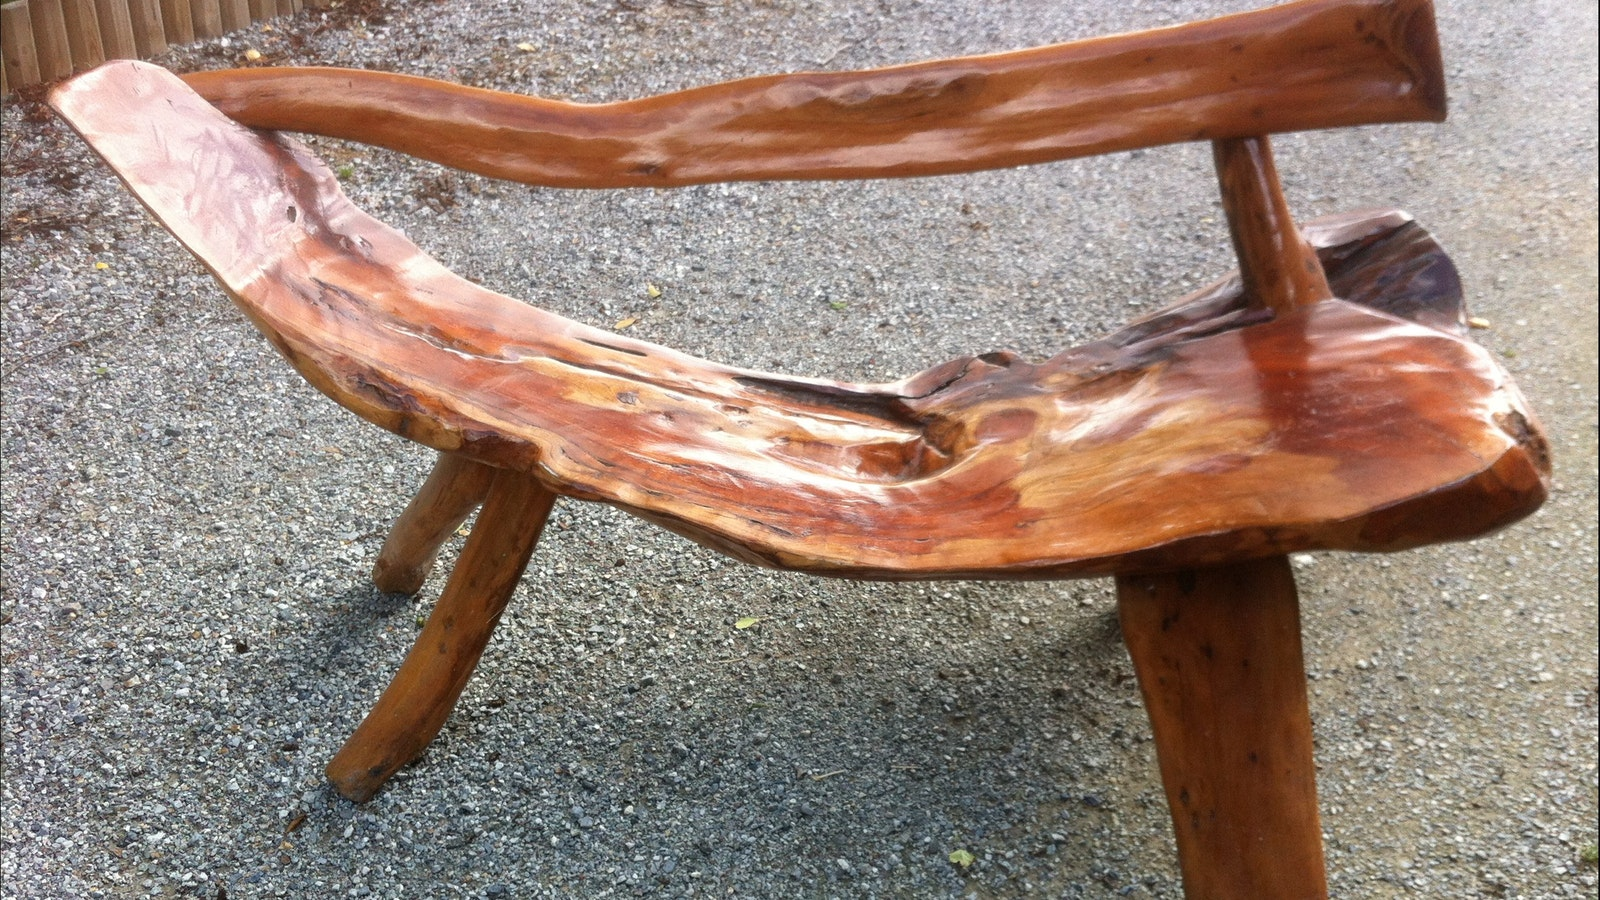 Hand crafted Timber Furniture